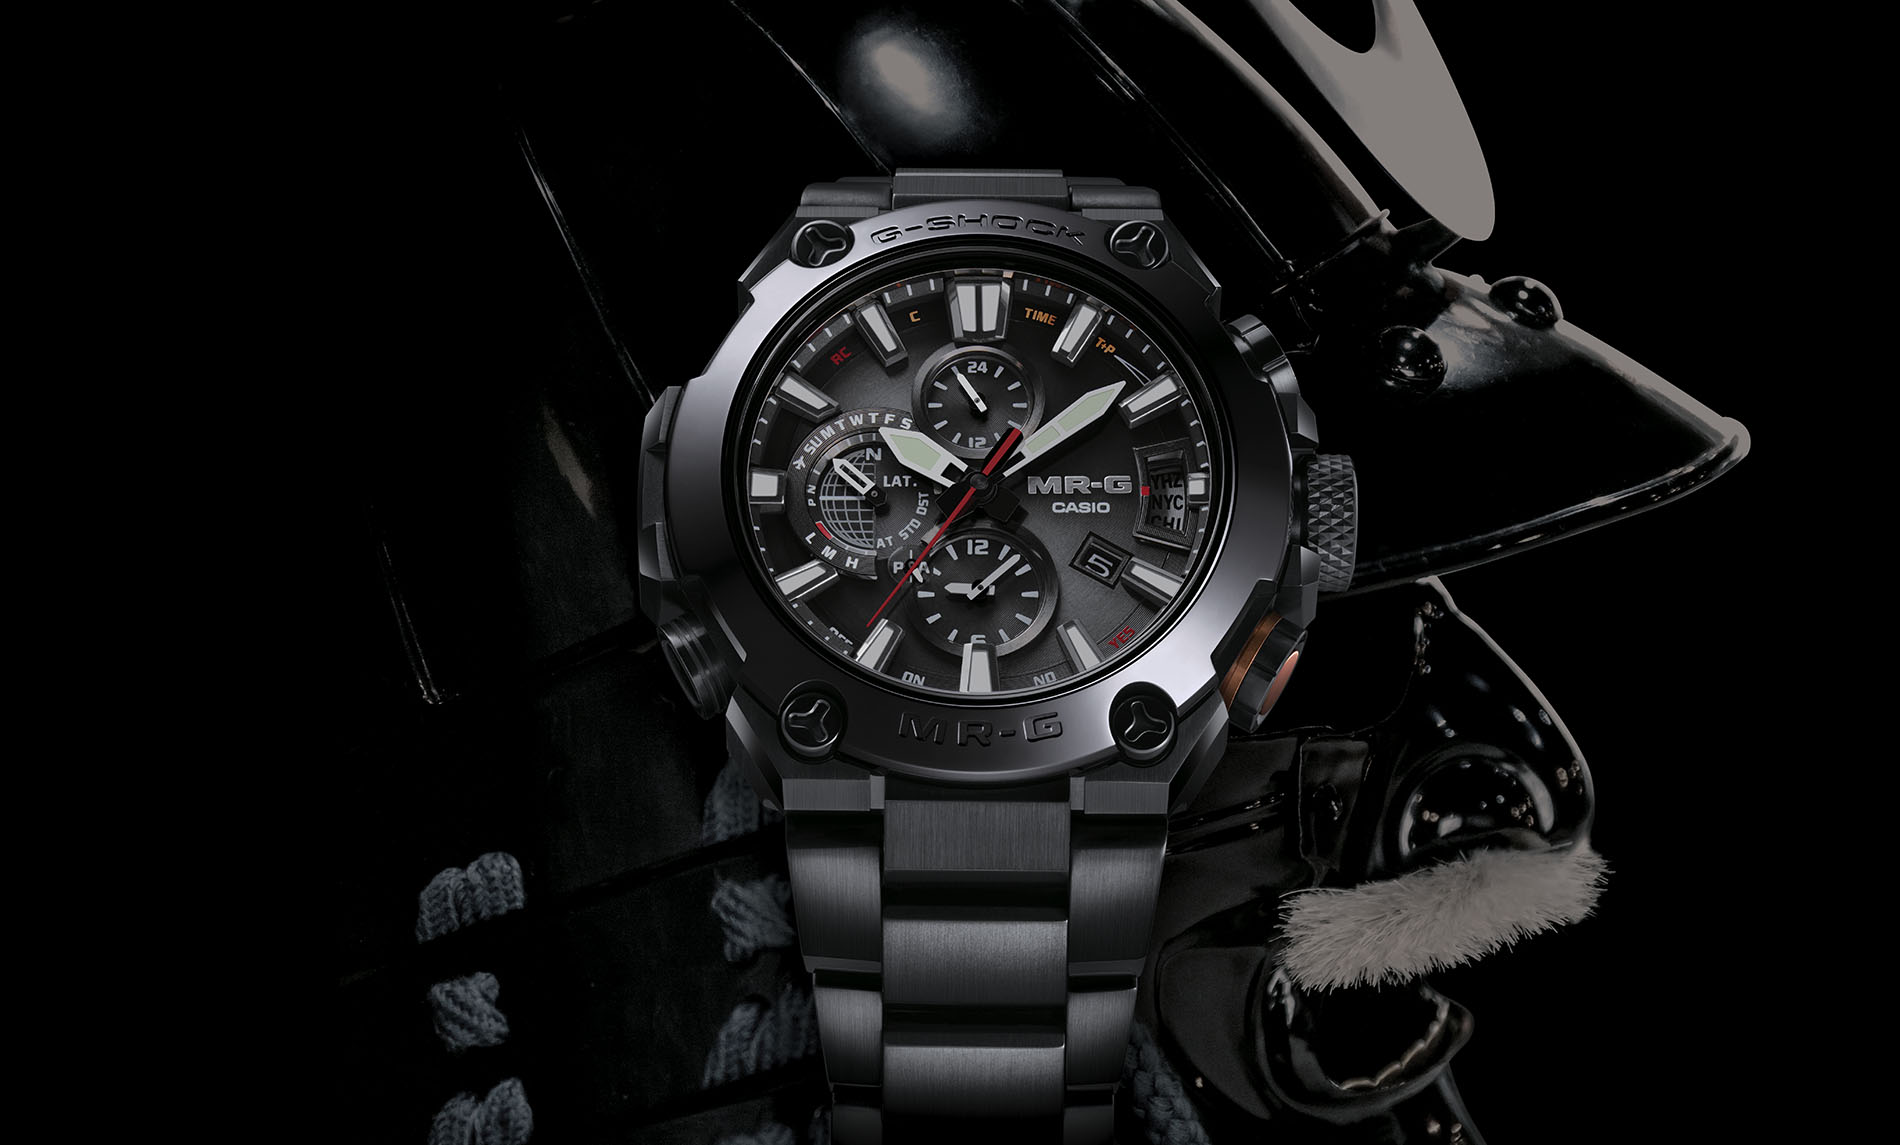 productdetail series tough sport watches b malaysia casio solar aq watch